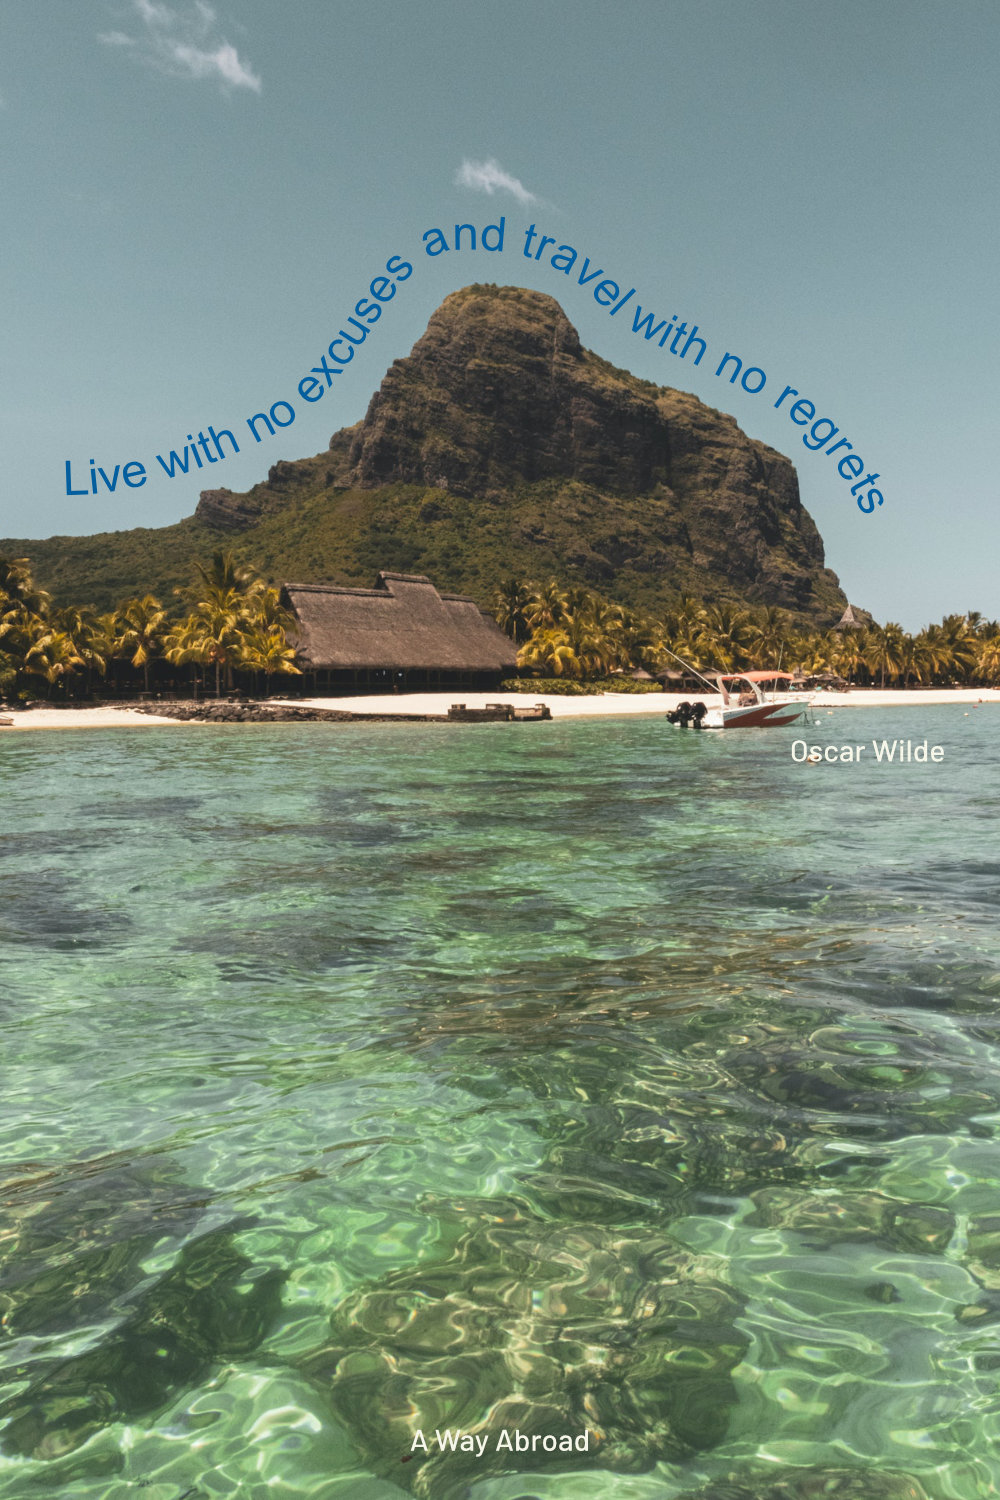 Mauritius rocky coastline with boats and a travel quote